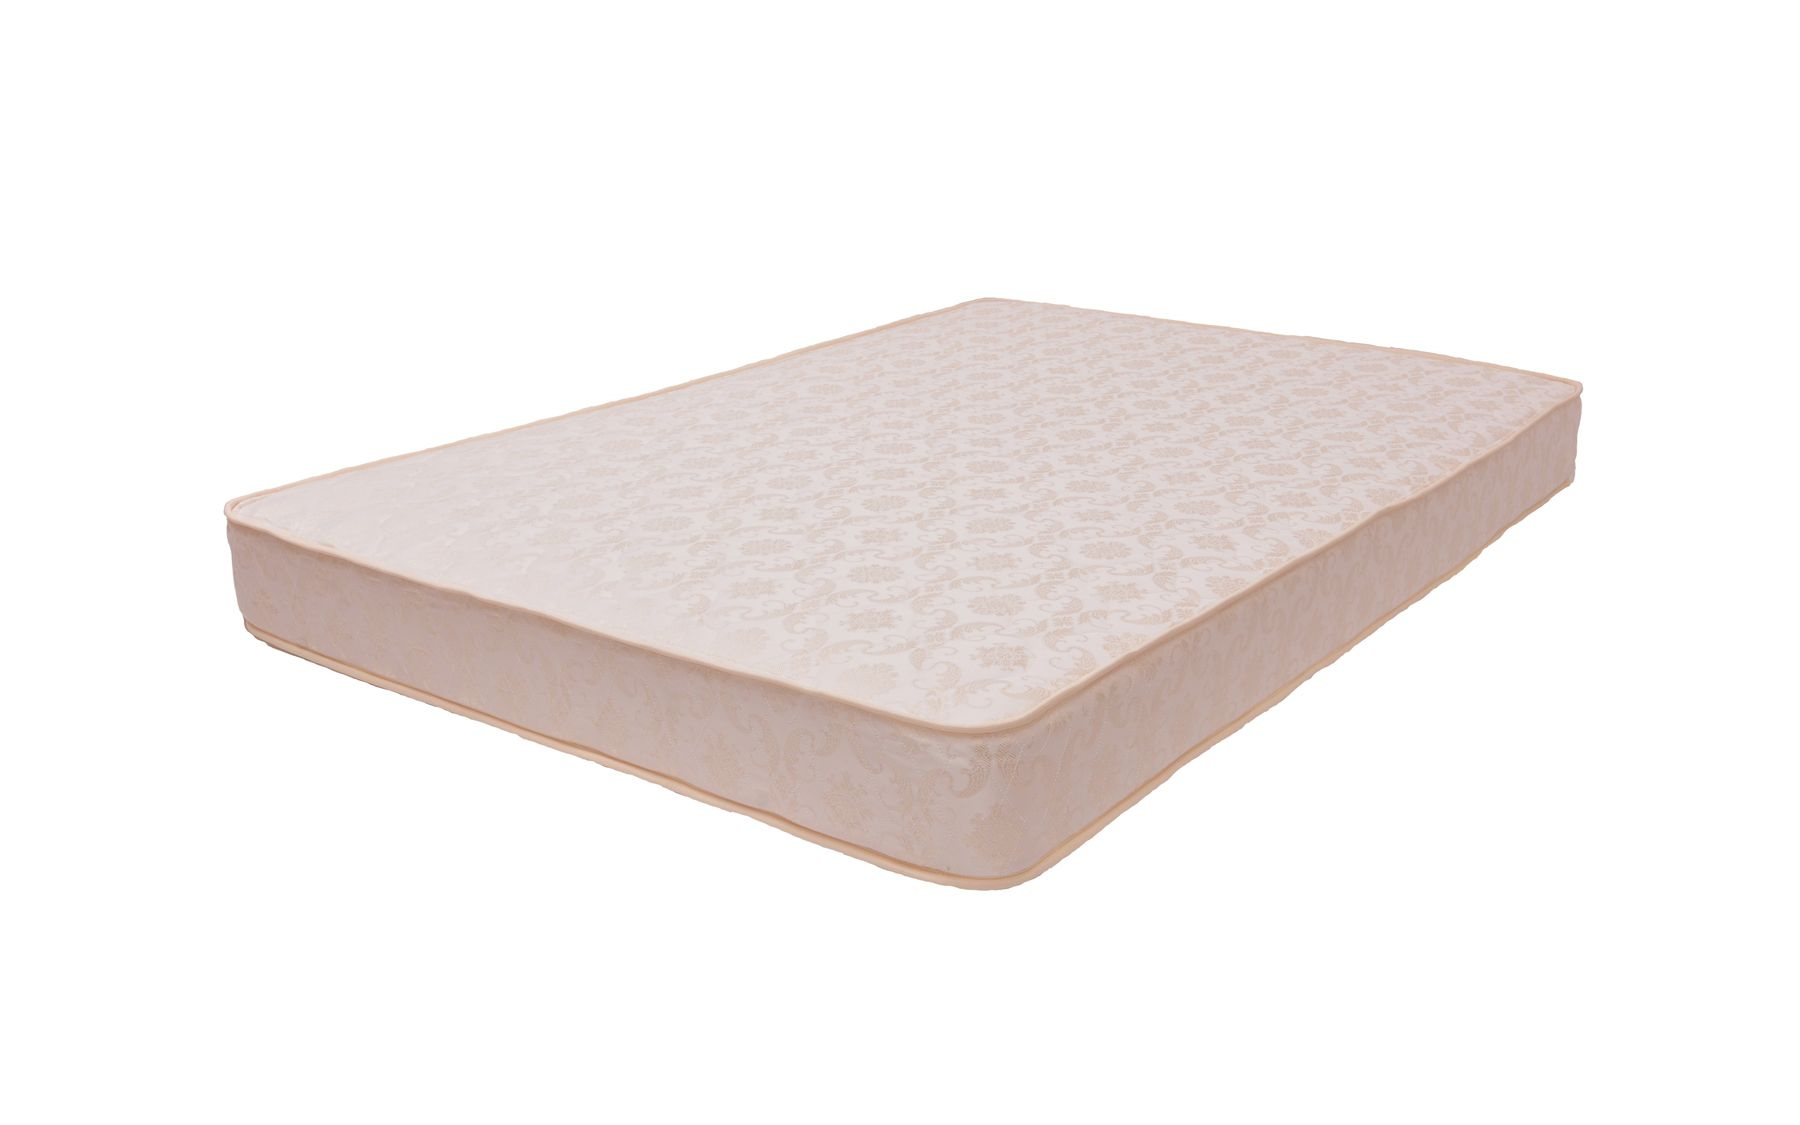 Is really a Foam Babys crib Bed mattress advisable